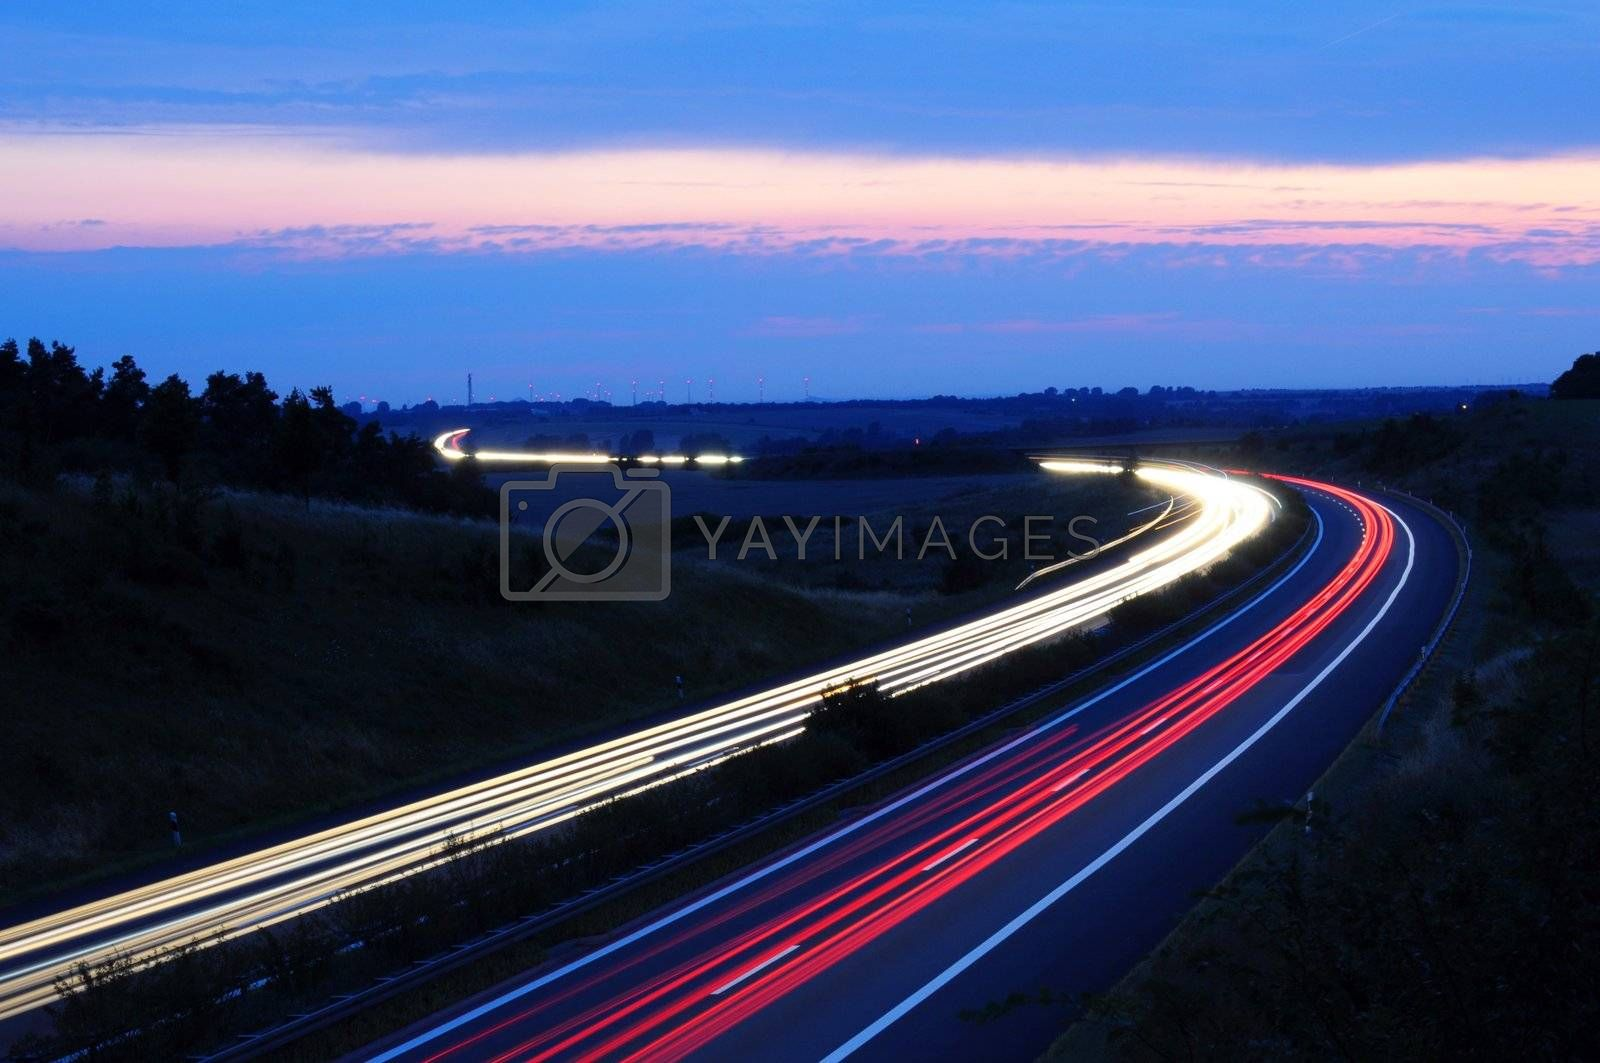 night traffic motion blur on highway showing car or transportation concept